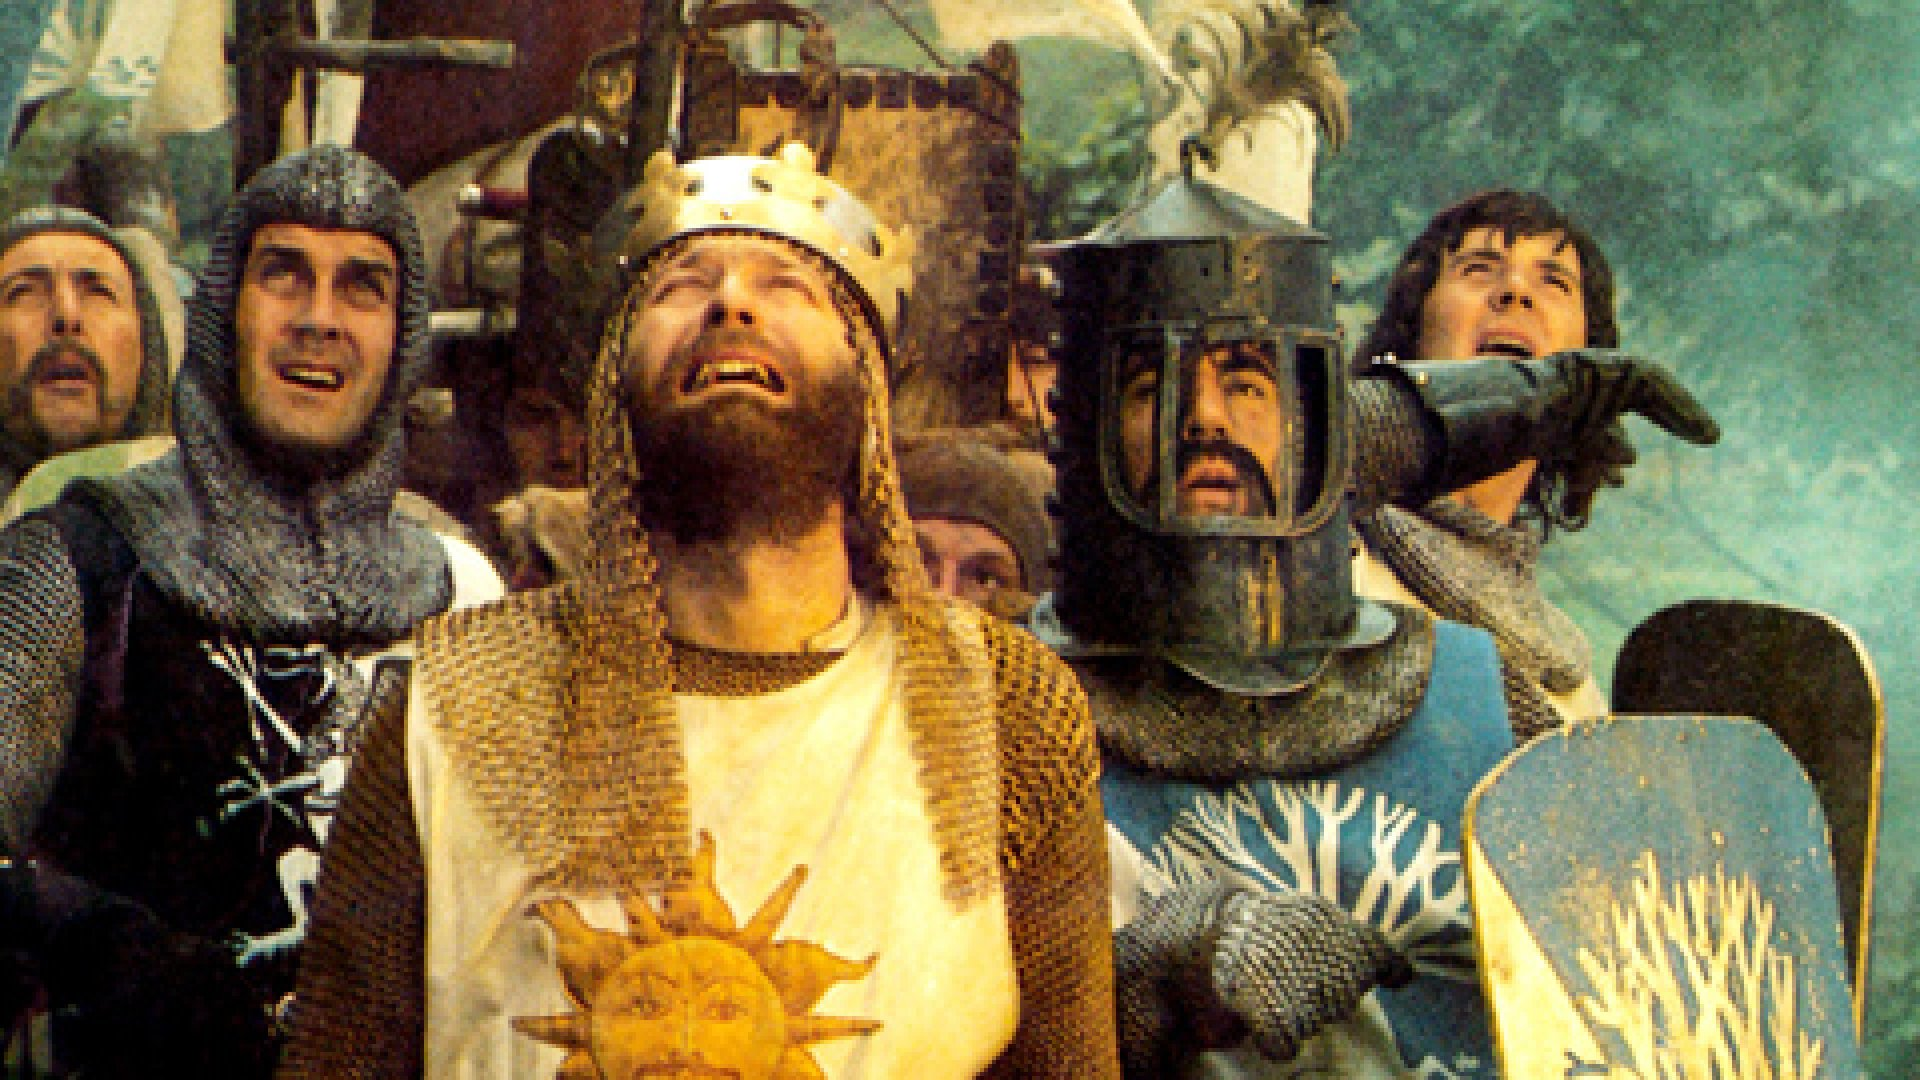 <strong>MONTY PYTHON AND THE HOLY GRAIL: </strong> Eric Idle, Michael Palin, center from left: John Cleese, Terry Jones (helmet), Graham Chapman as King Arthur (front), 1975